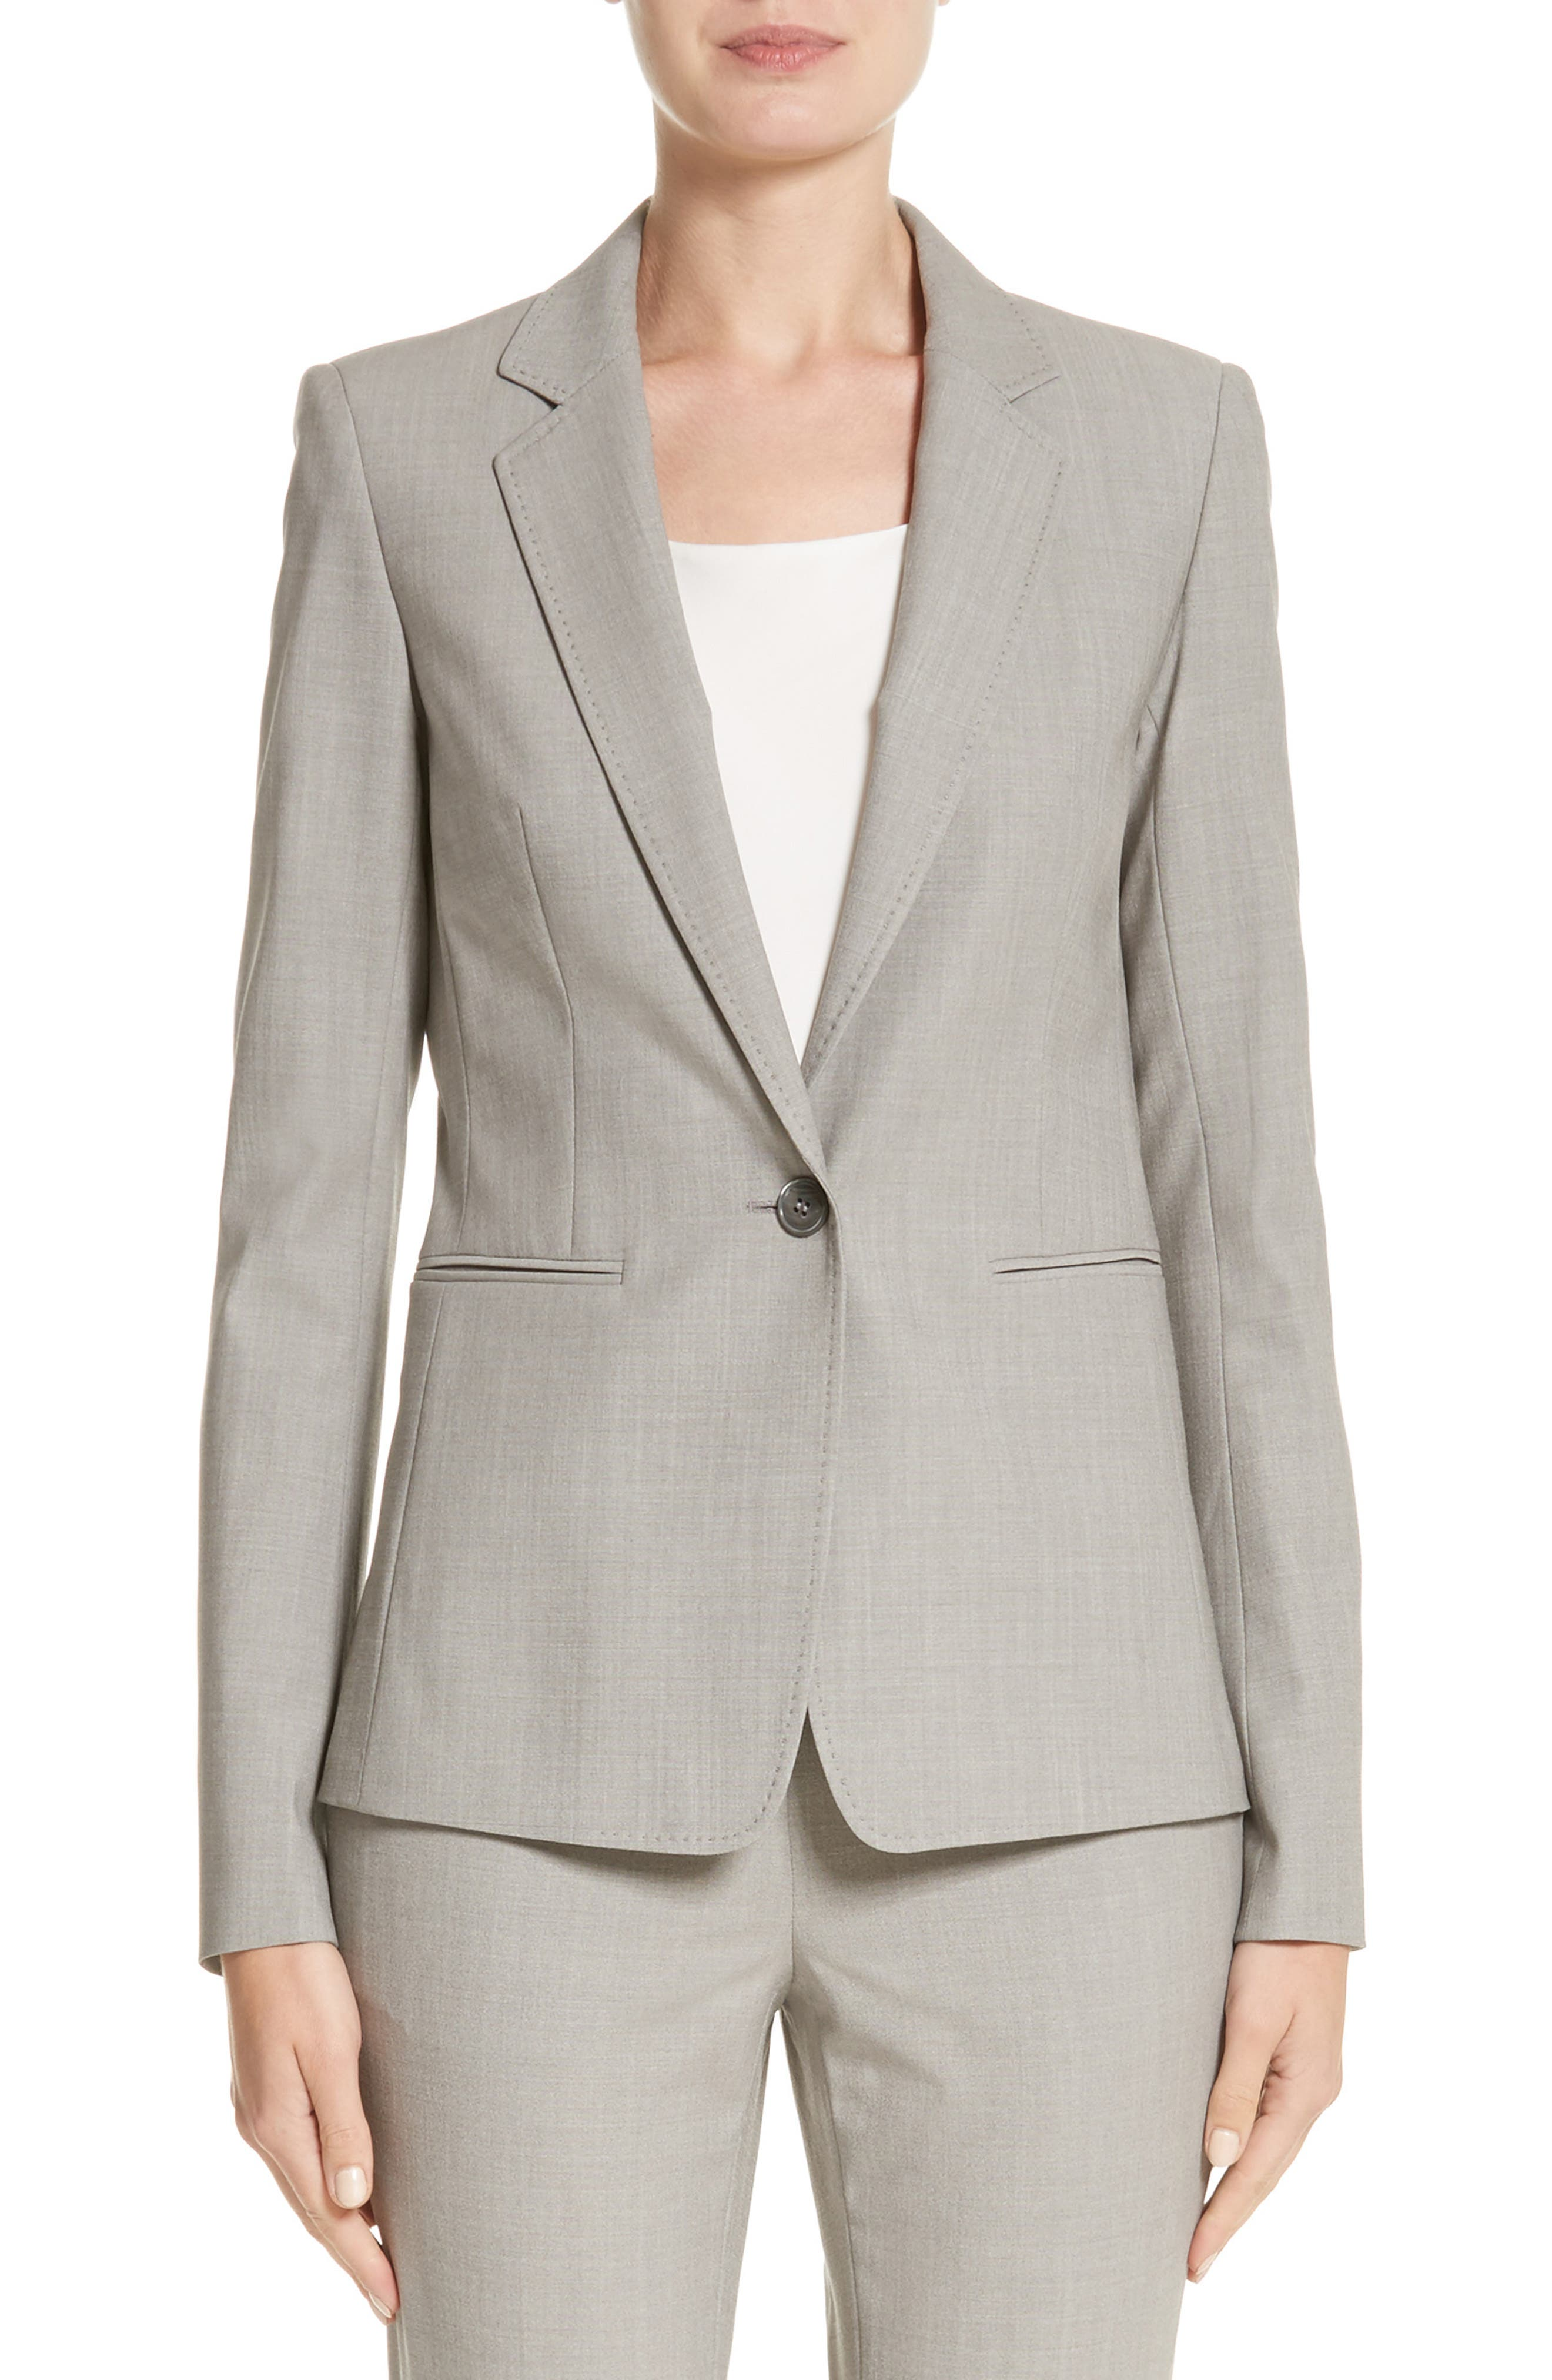 Lyndon Stretch Wool Blazer,                         Main,                         color, Feather Grey Melange